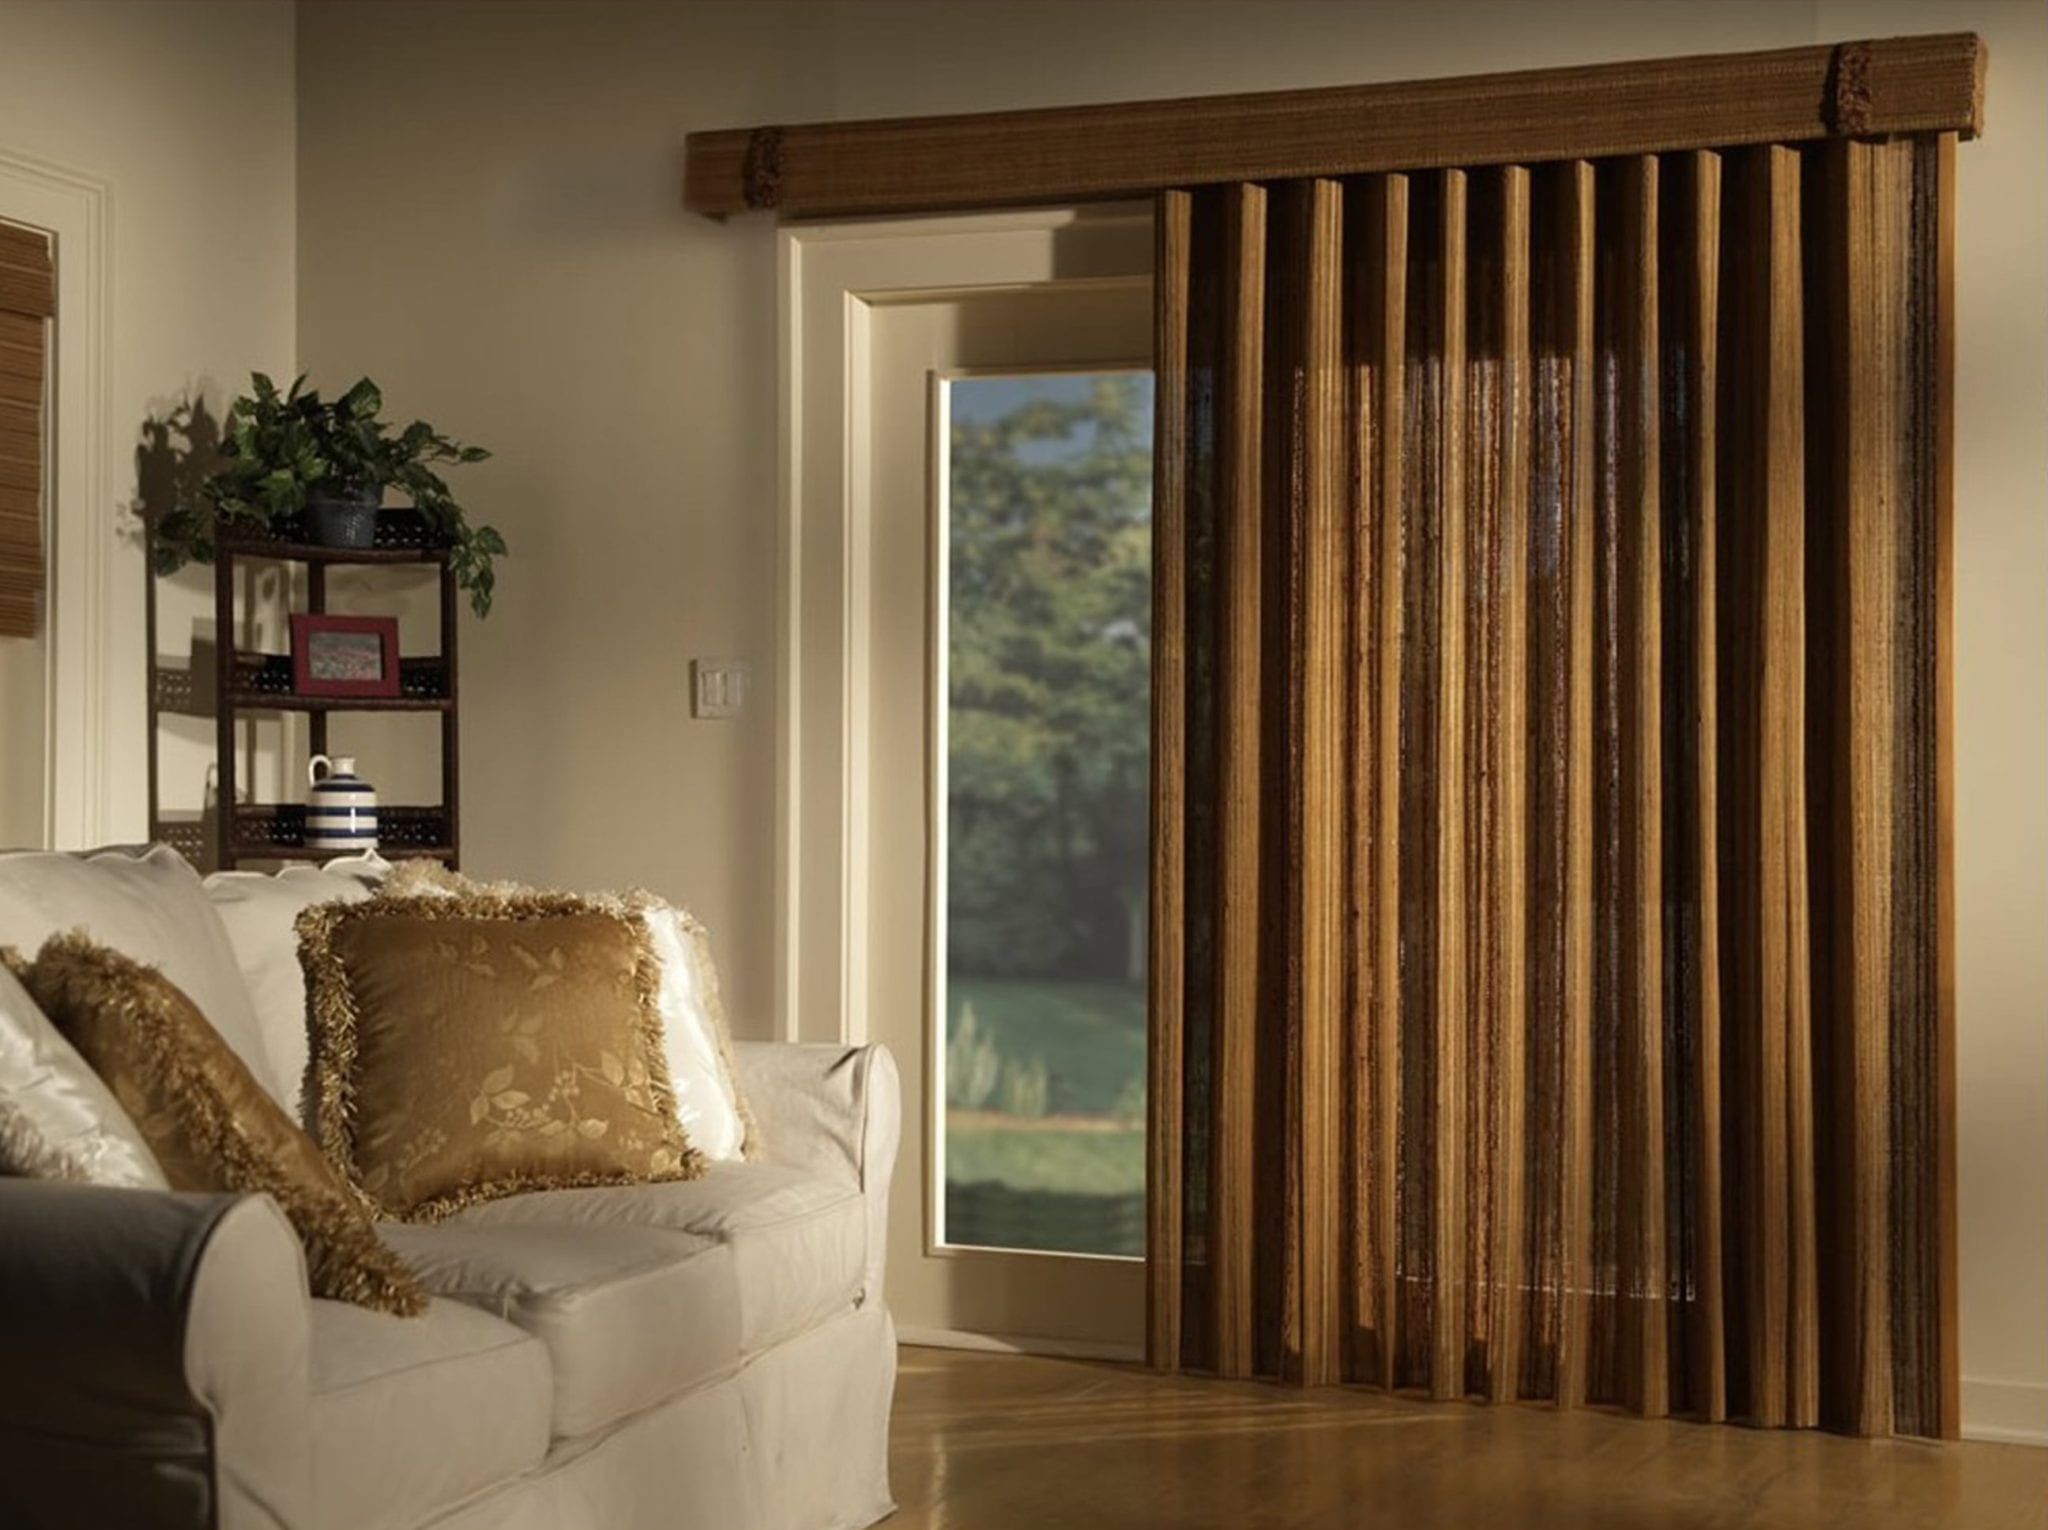 Superieur Home; Bamboo V_0003_bamboo Vertical Blinds Patio Doors  Patios Home Decorating Outstanding Image